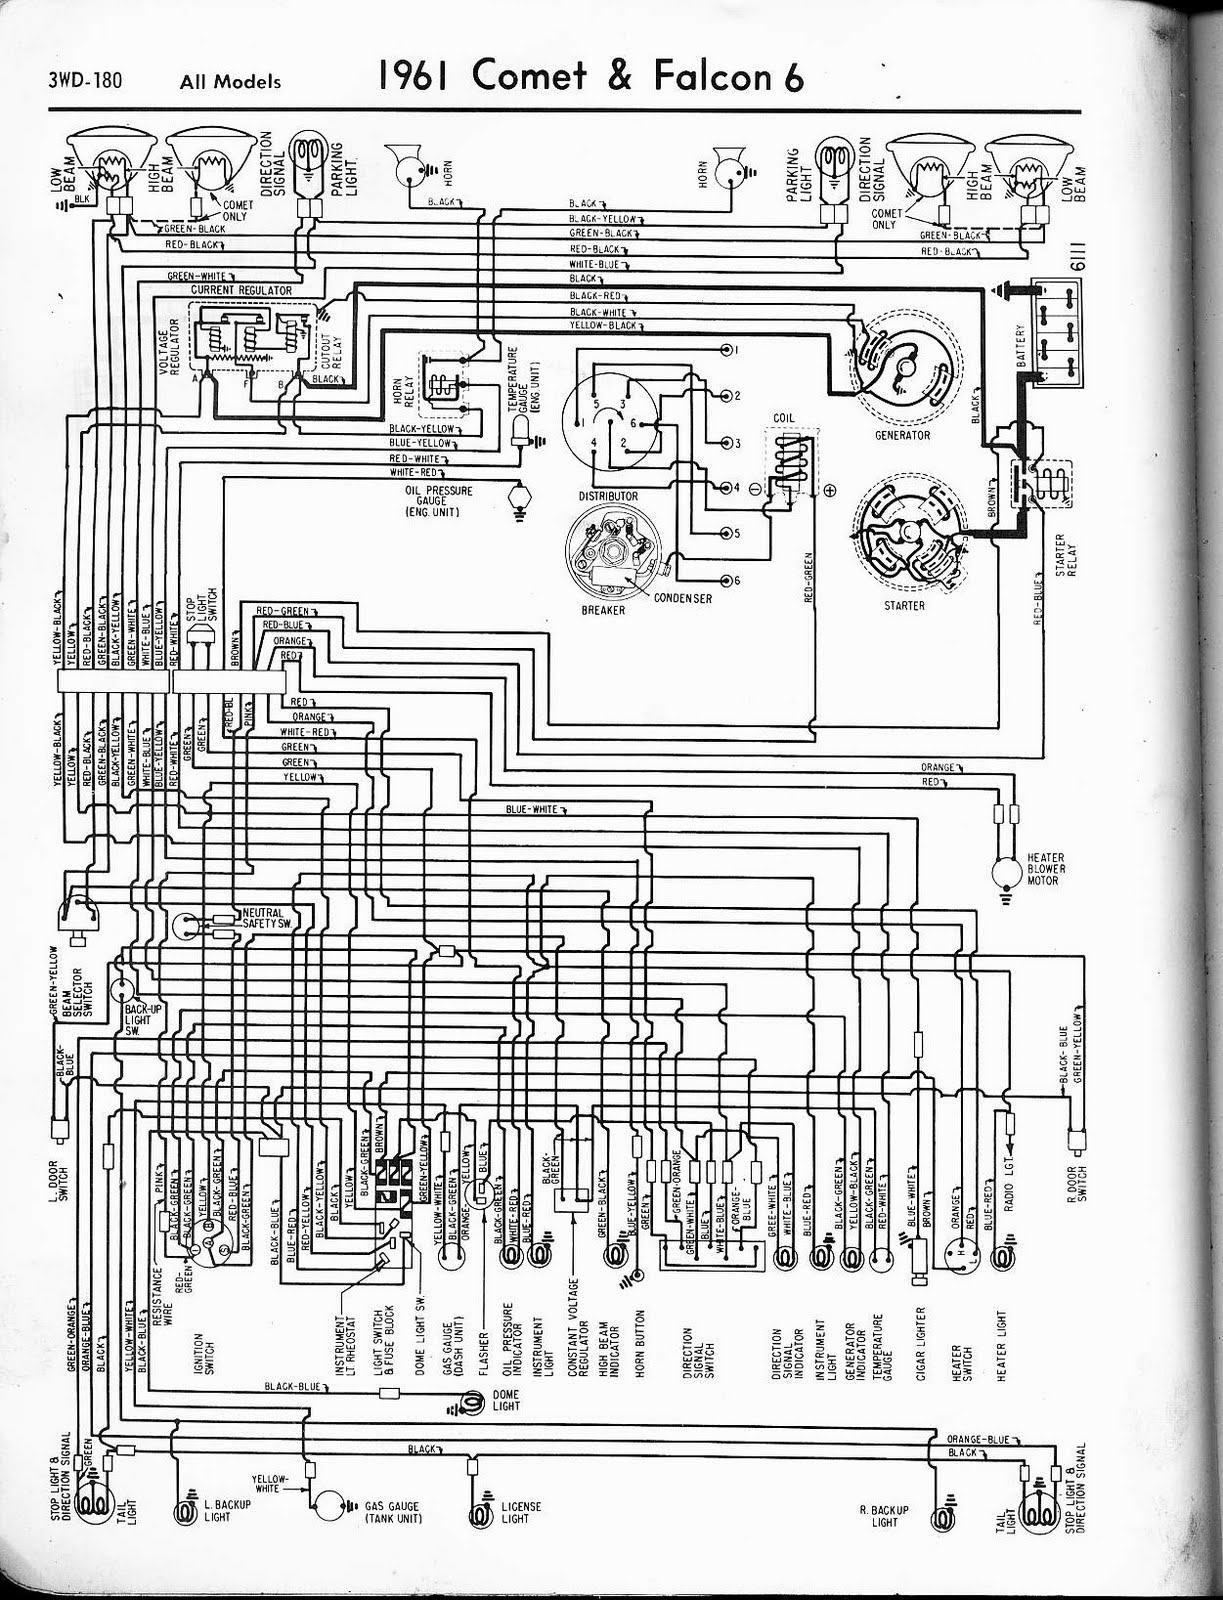 wiring diagram for 1960 ford falcon wire data schema u2022 rh sellfie co 61 f100 wiring diagram 61 f100 wiring diagram